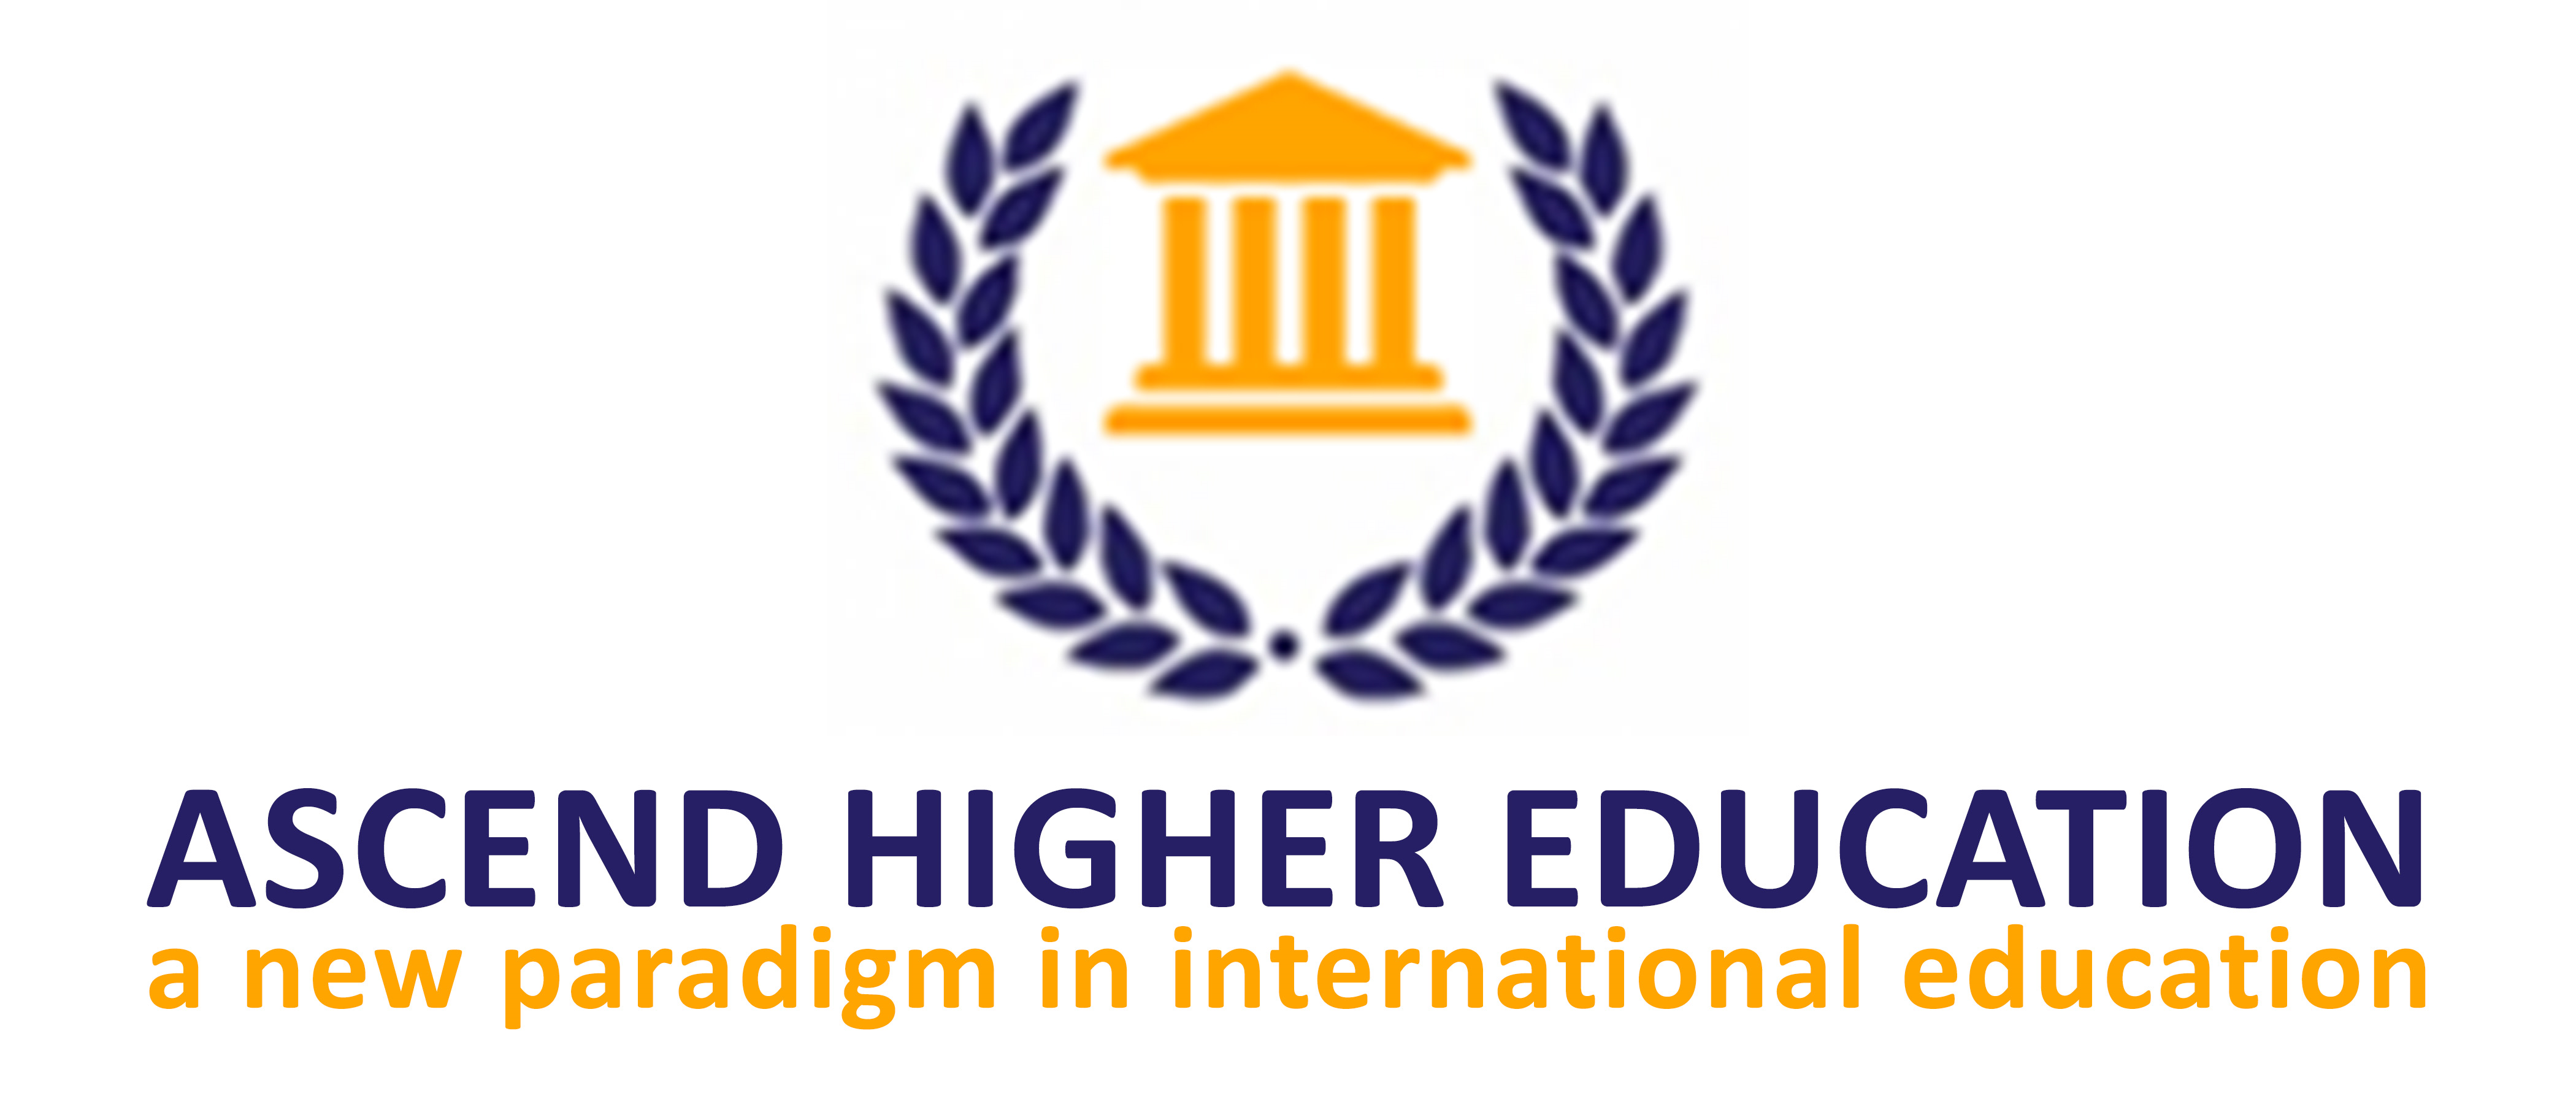 Ascend Higher Education logo